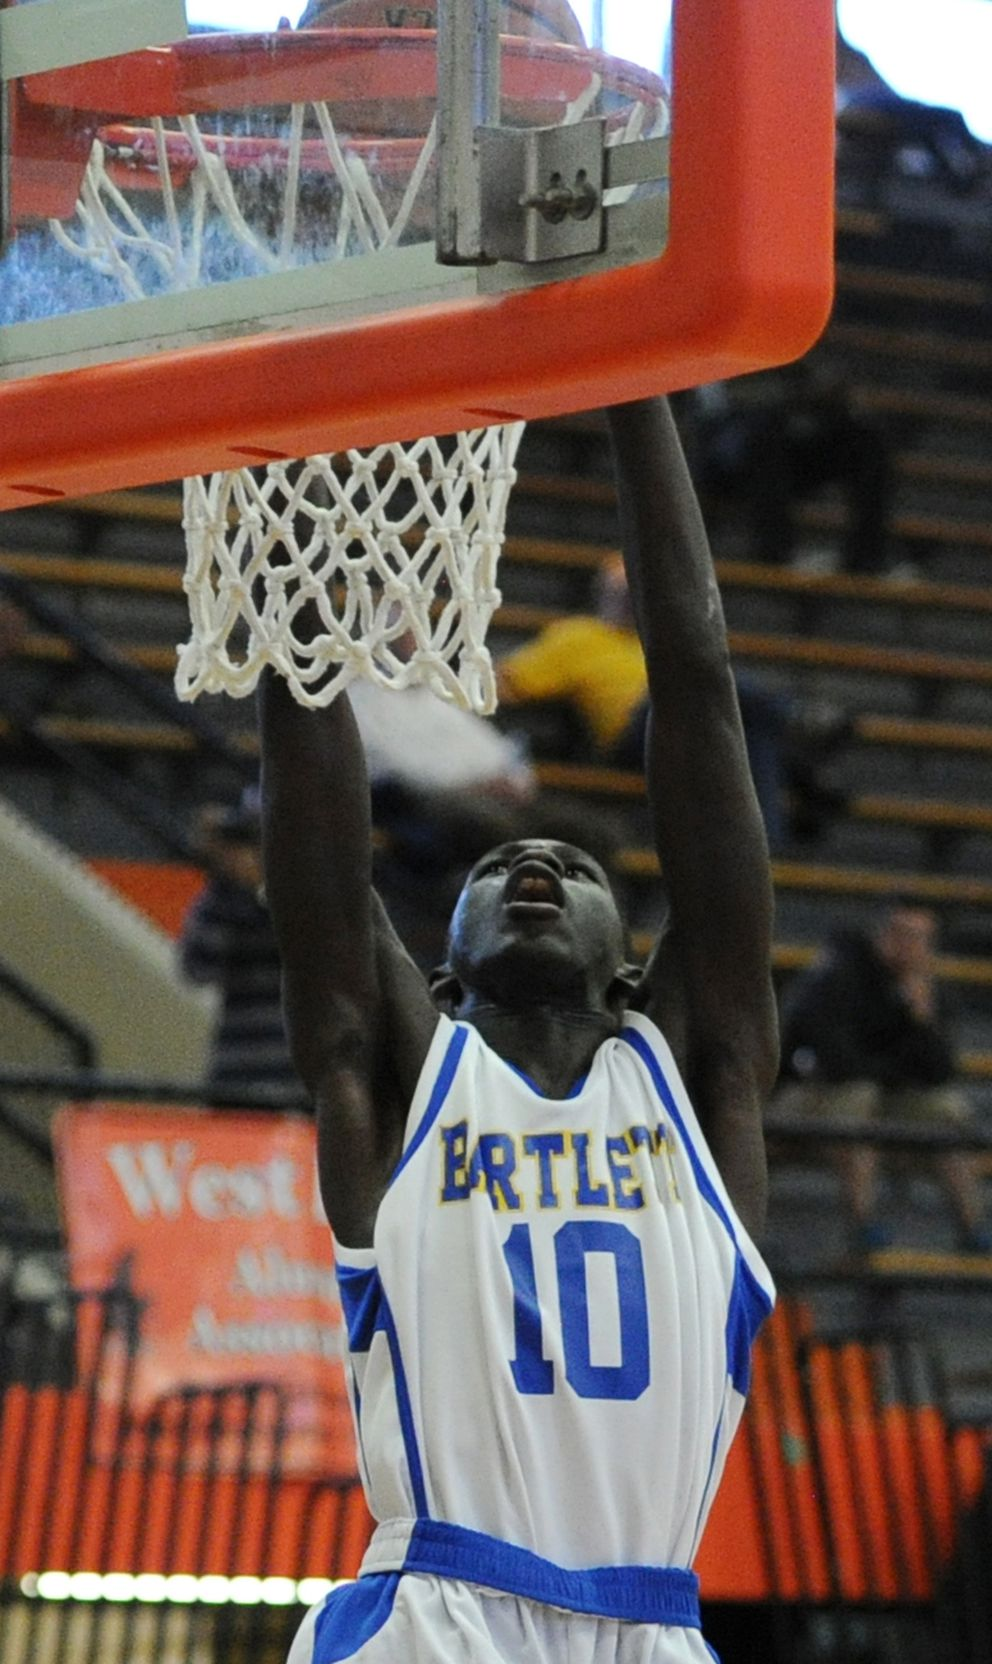 Bentiu Panoam dunks the ball during Bartlett's 71-45 victory over the Service Cougars in the 2016 Cook Inlet Conference championships.